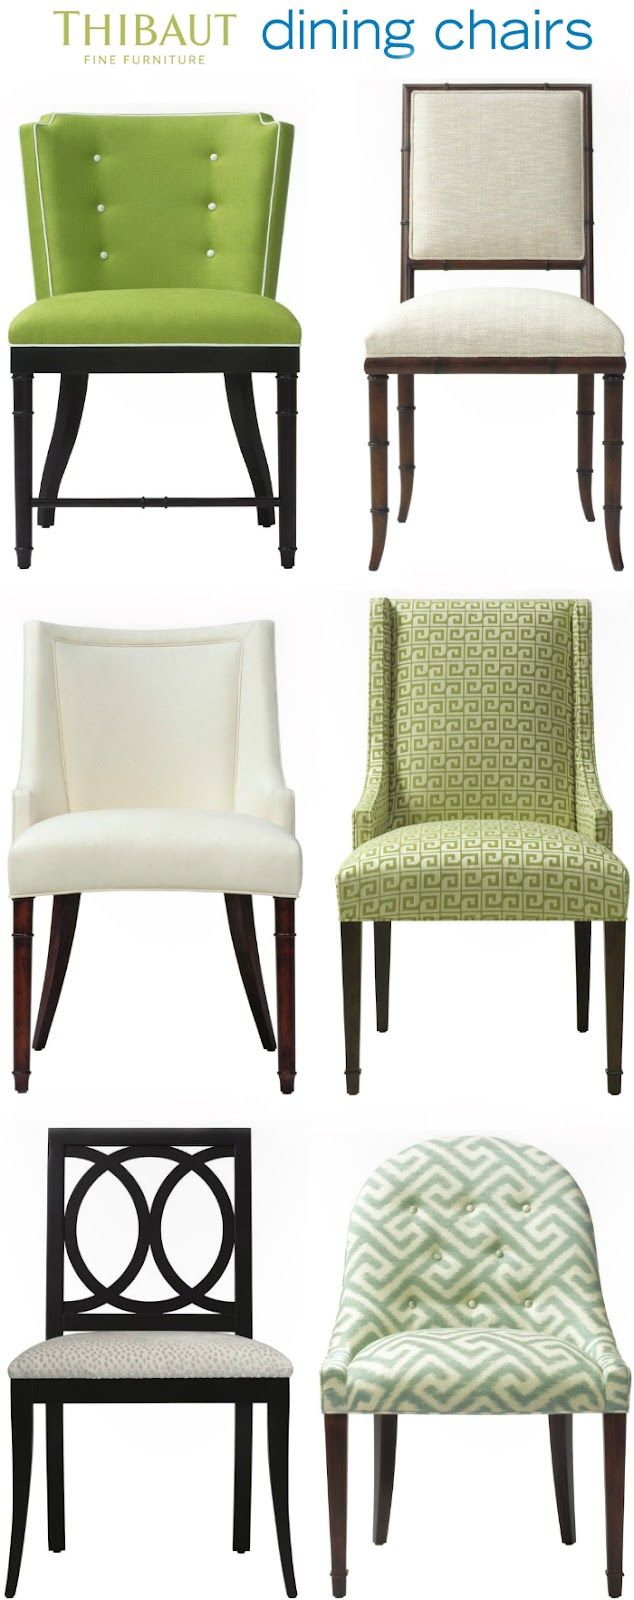 "Dining Chairs from Thibaut Furniture (© 2012); featuring the ""Stirling,"" ""Darien,"" ""Palisades,"" ""Hudson,"" ""Carlyle,"" and ""Melrose"" models."